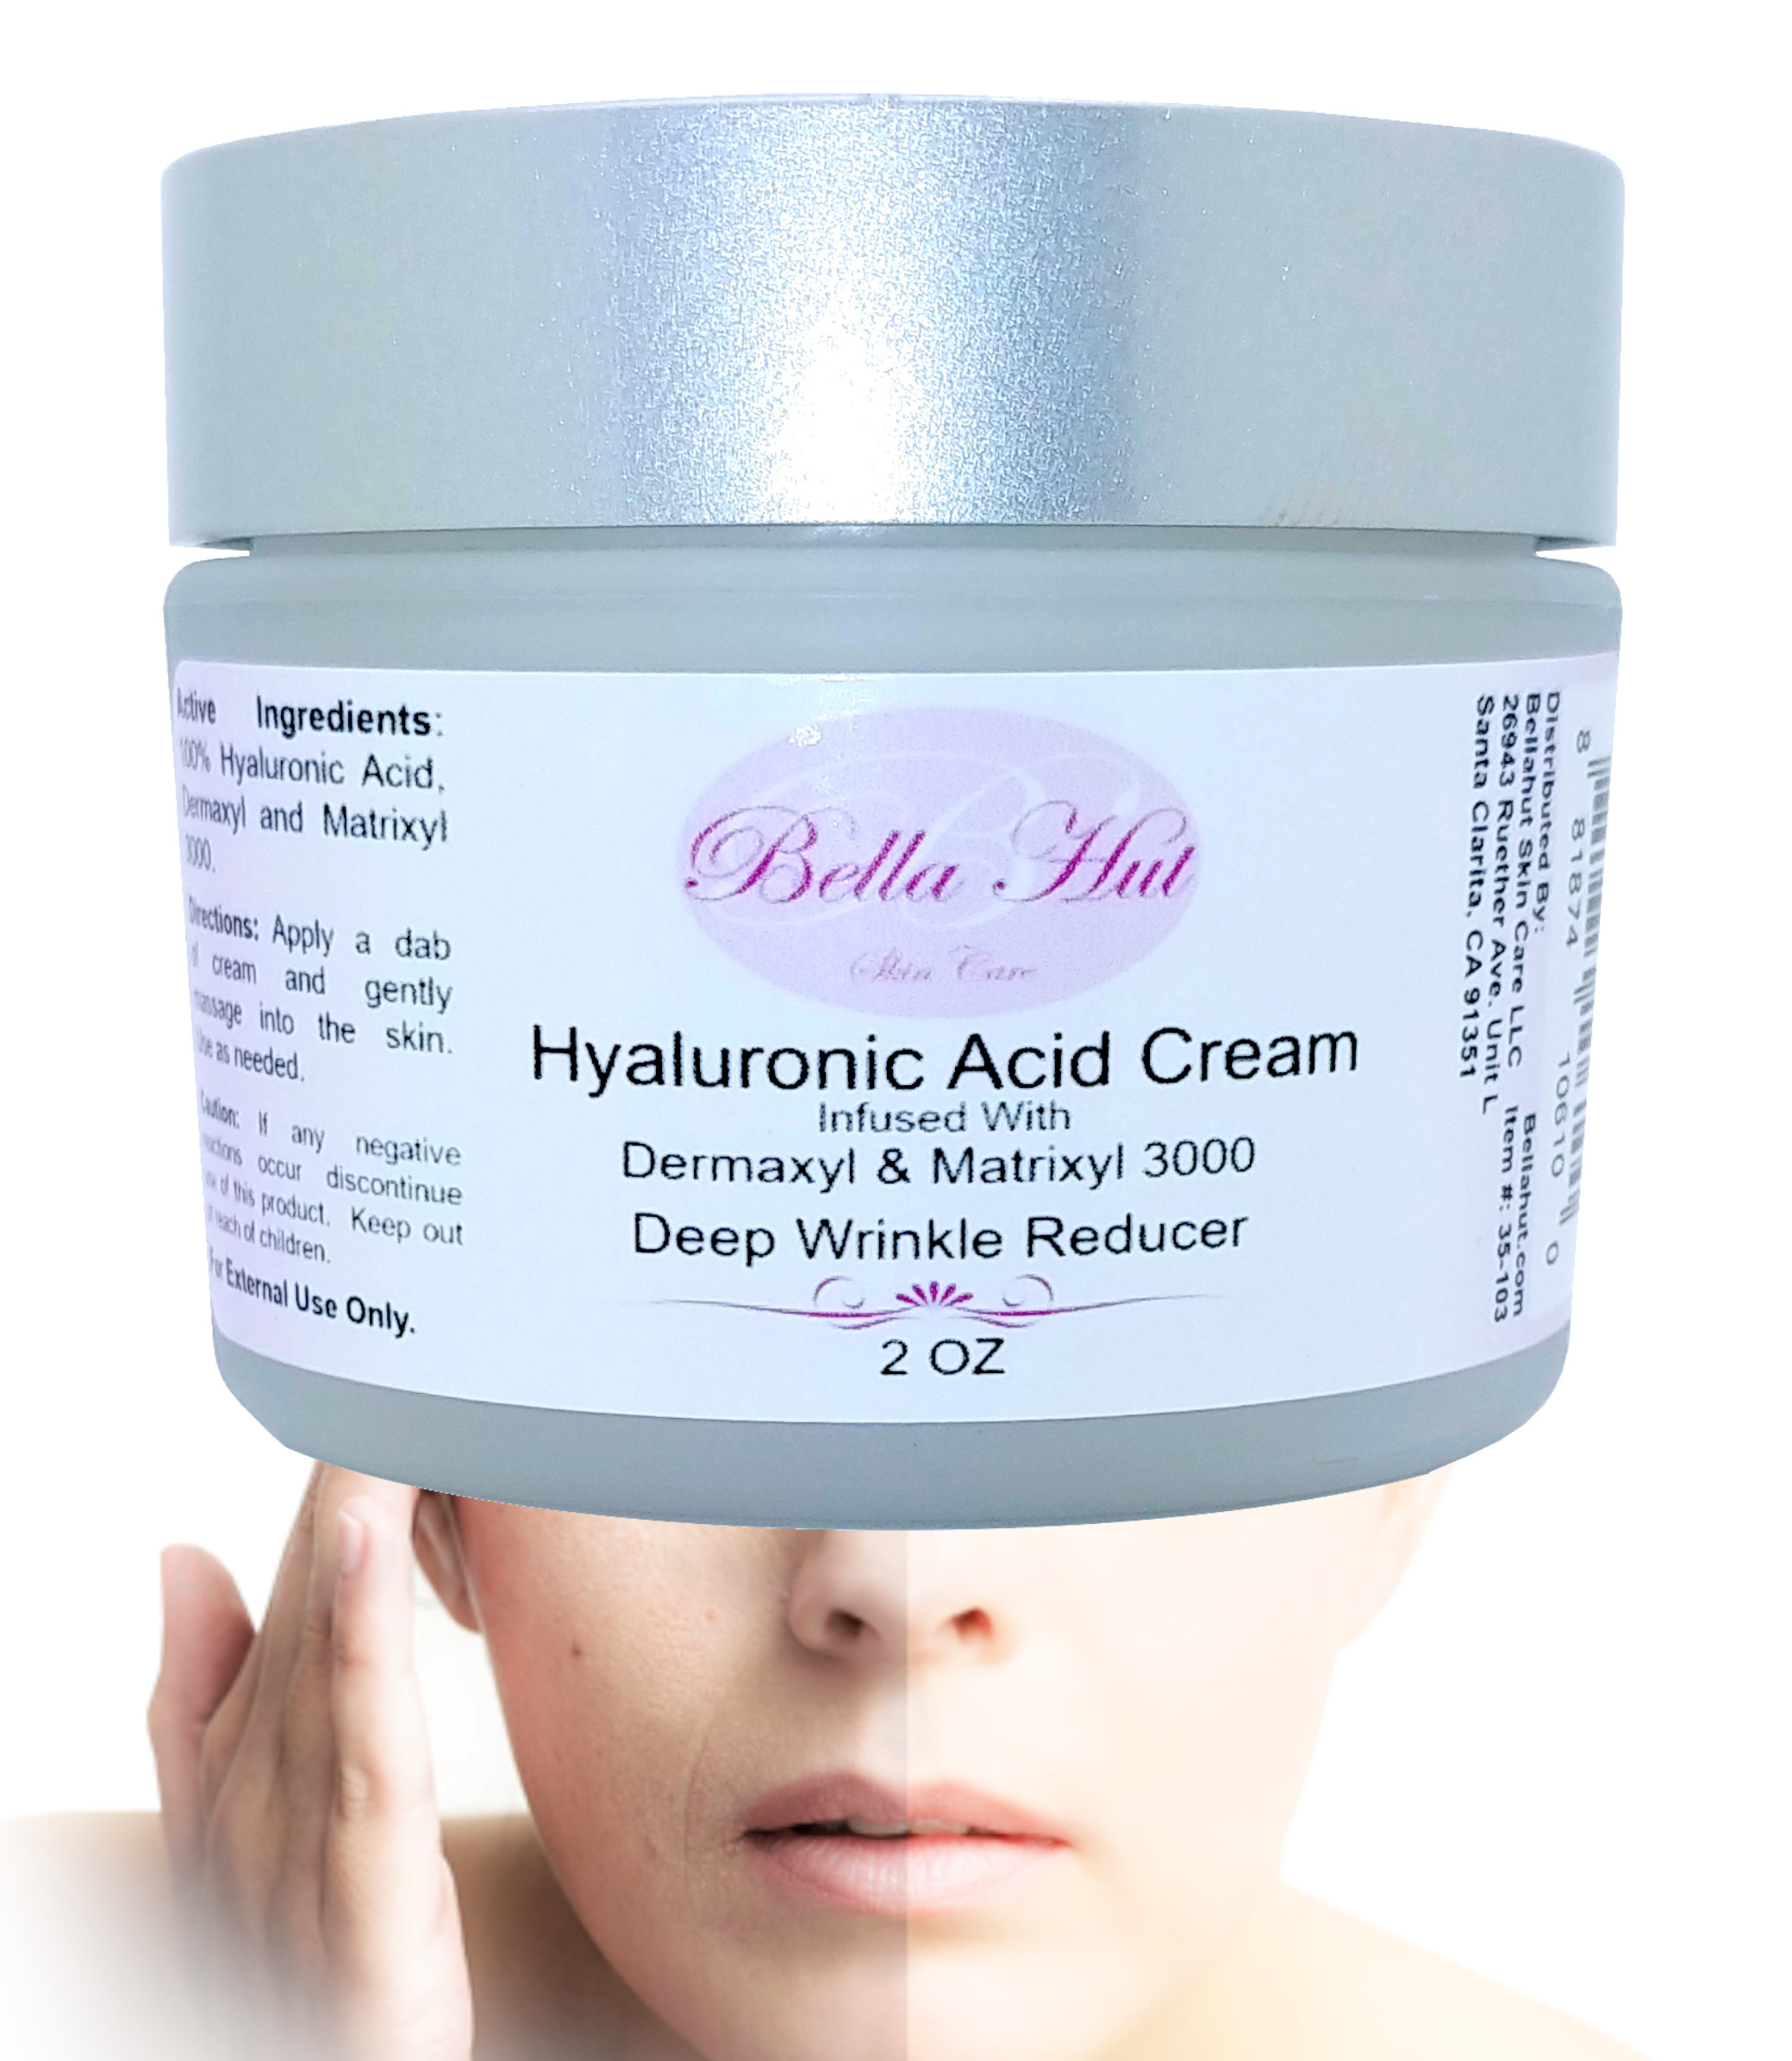 100% Hyaluronic Acid Cream with Dermaxyl And Matrixyl 3000